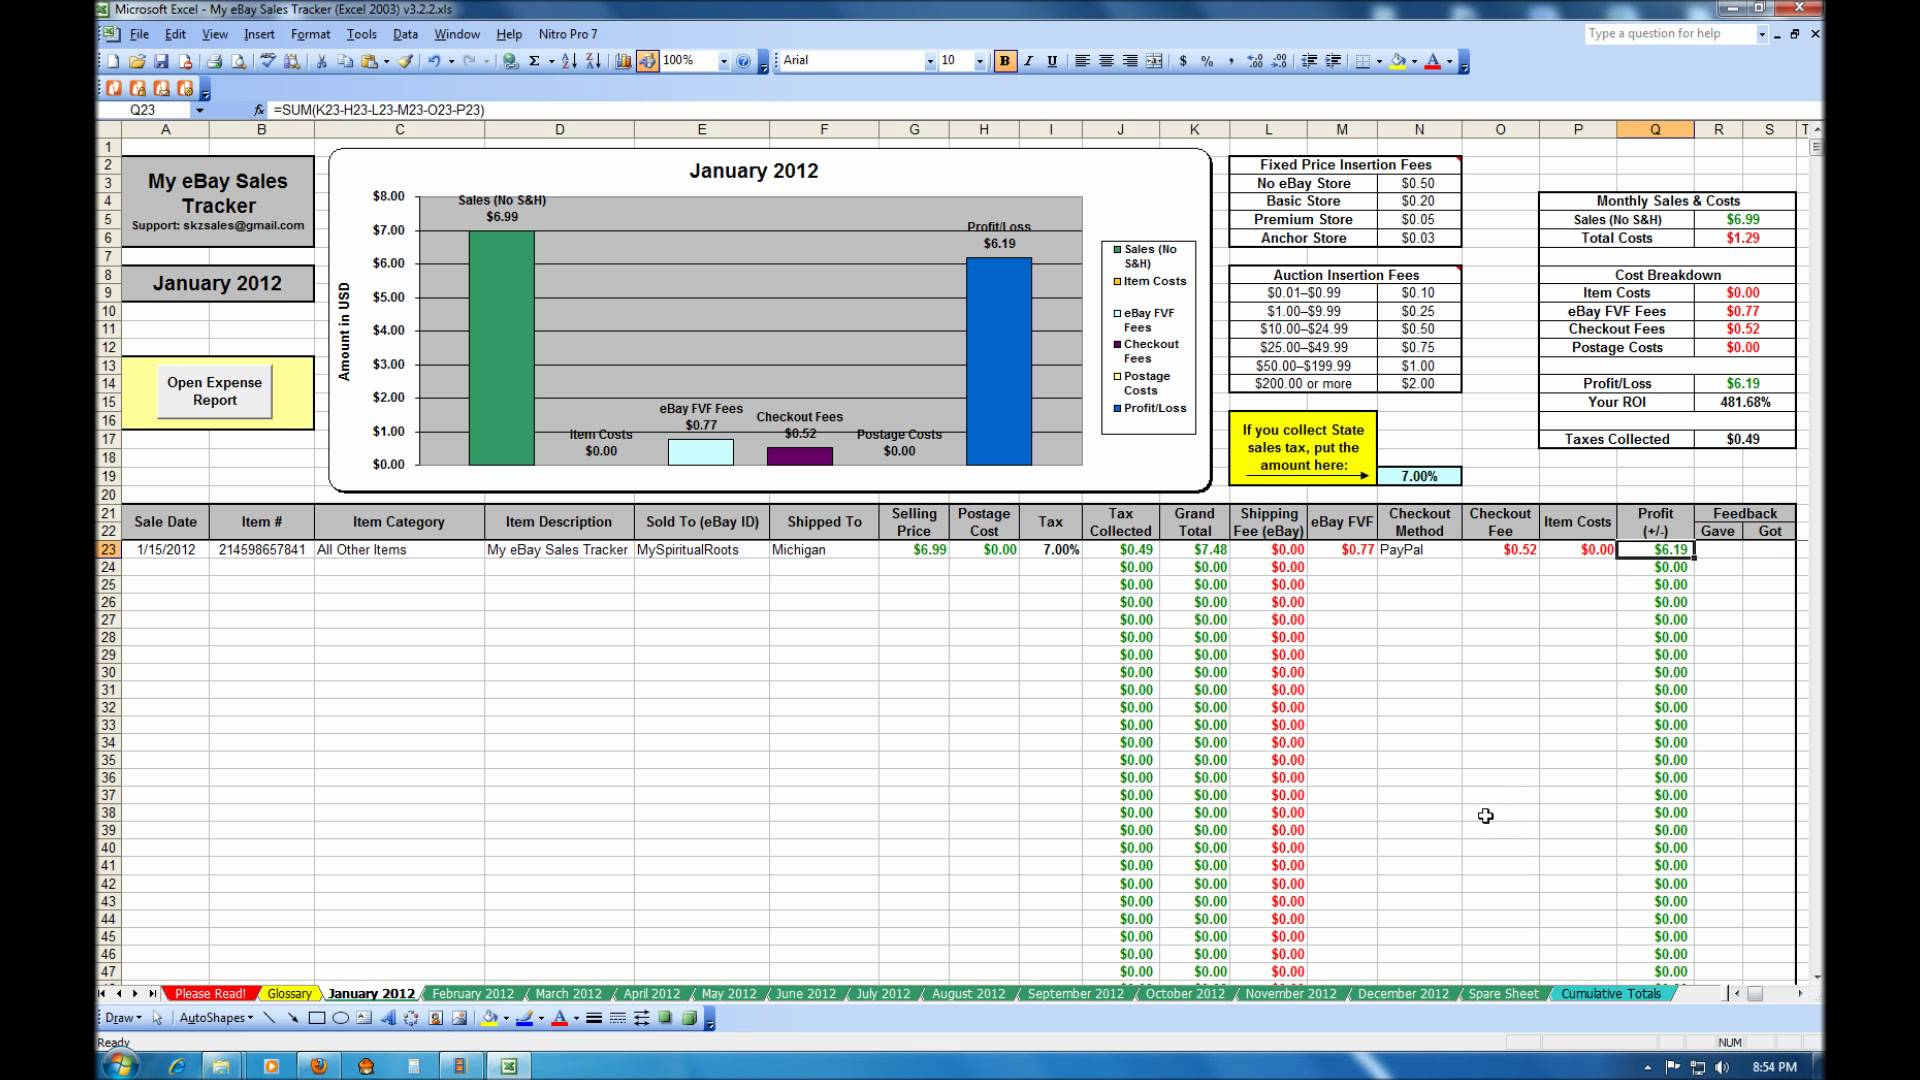 Spreadsheet For Sales Tracking As How To Make A Spreadsheet Numbers Intended For Sales Tracker Spreadsheet